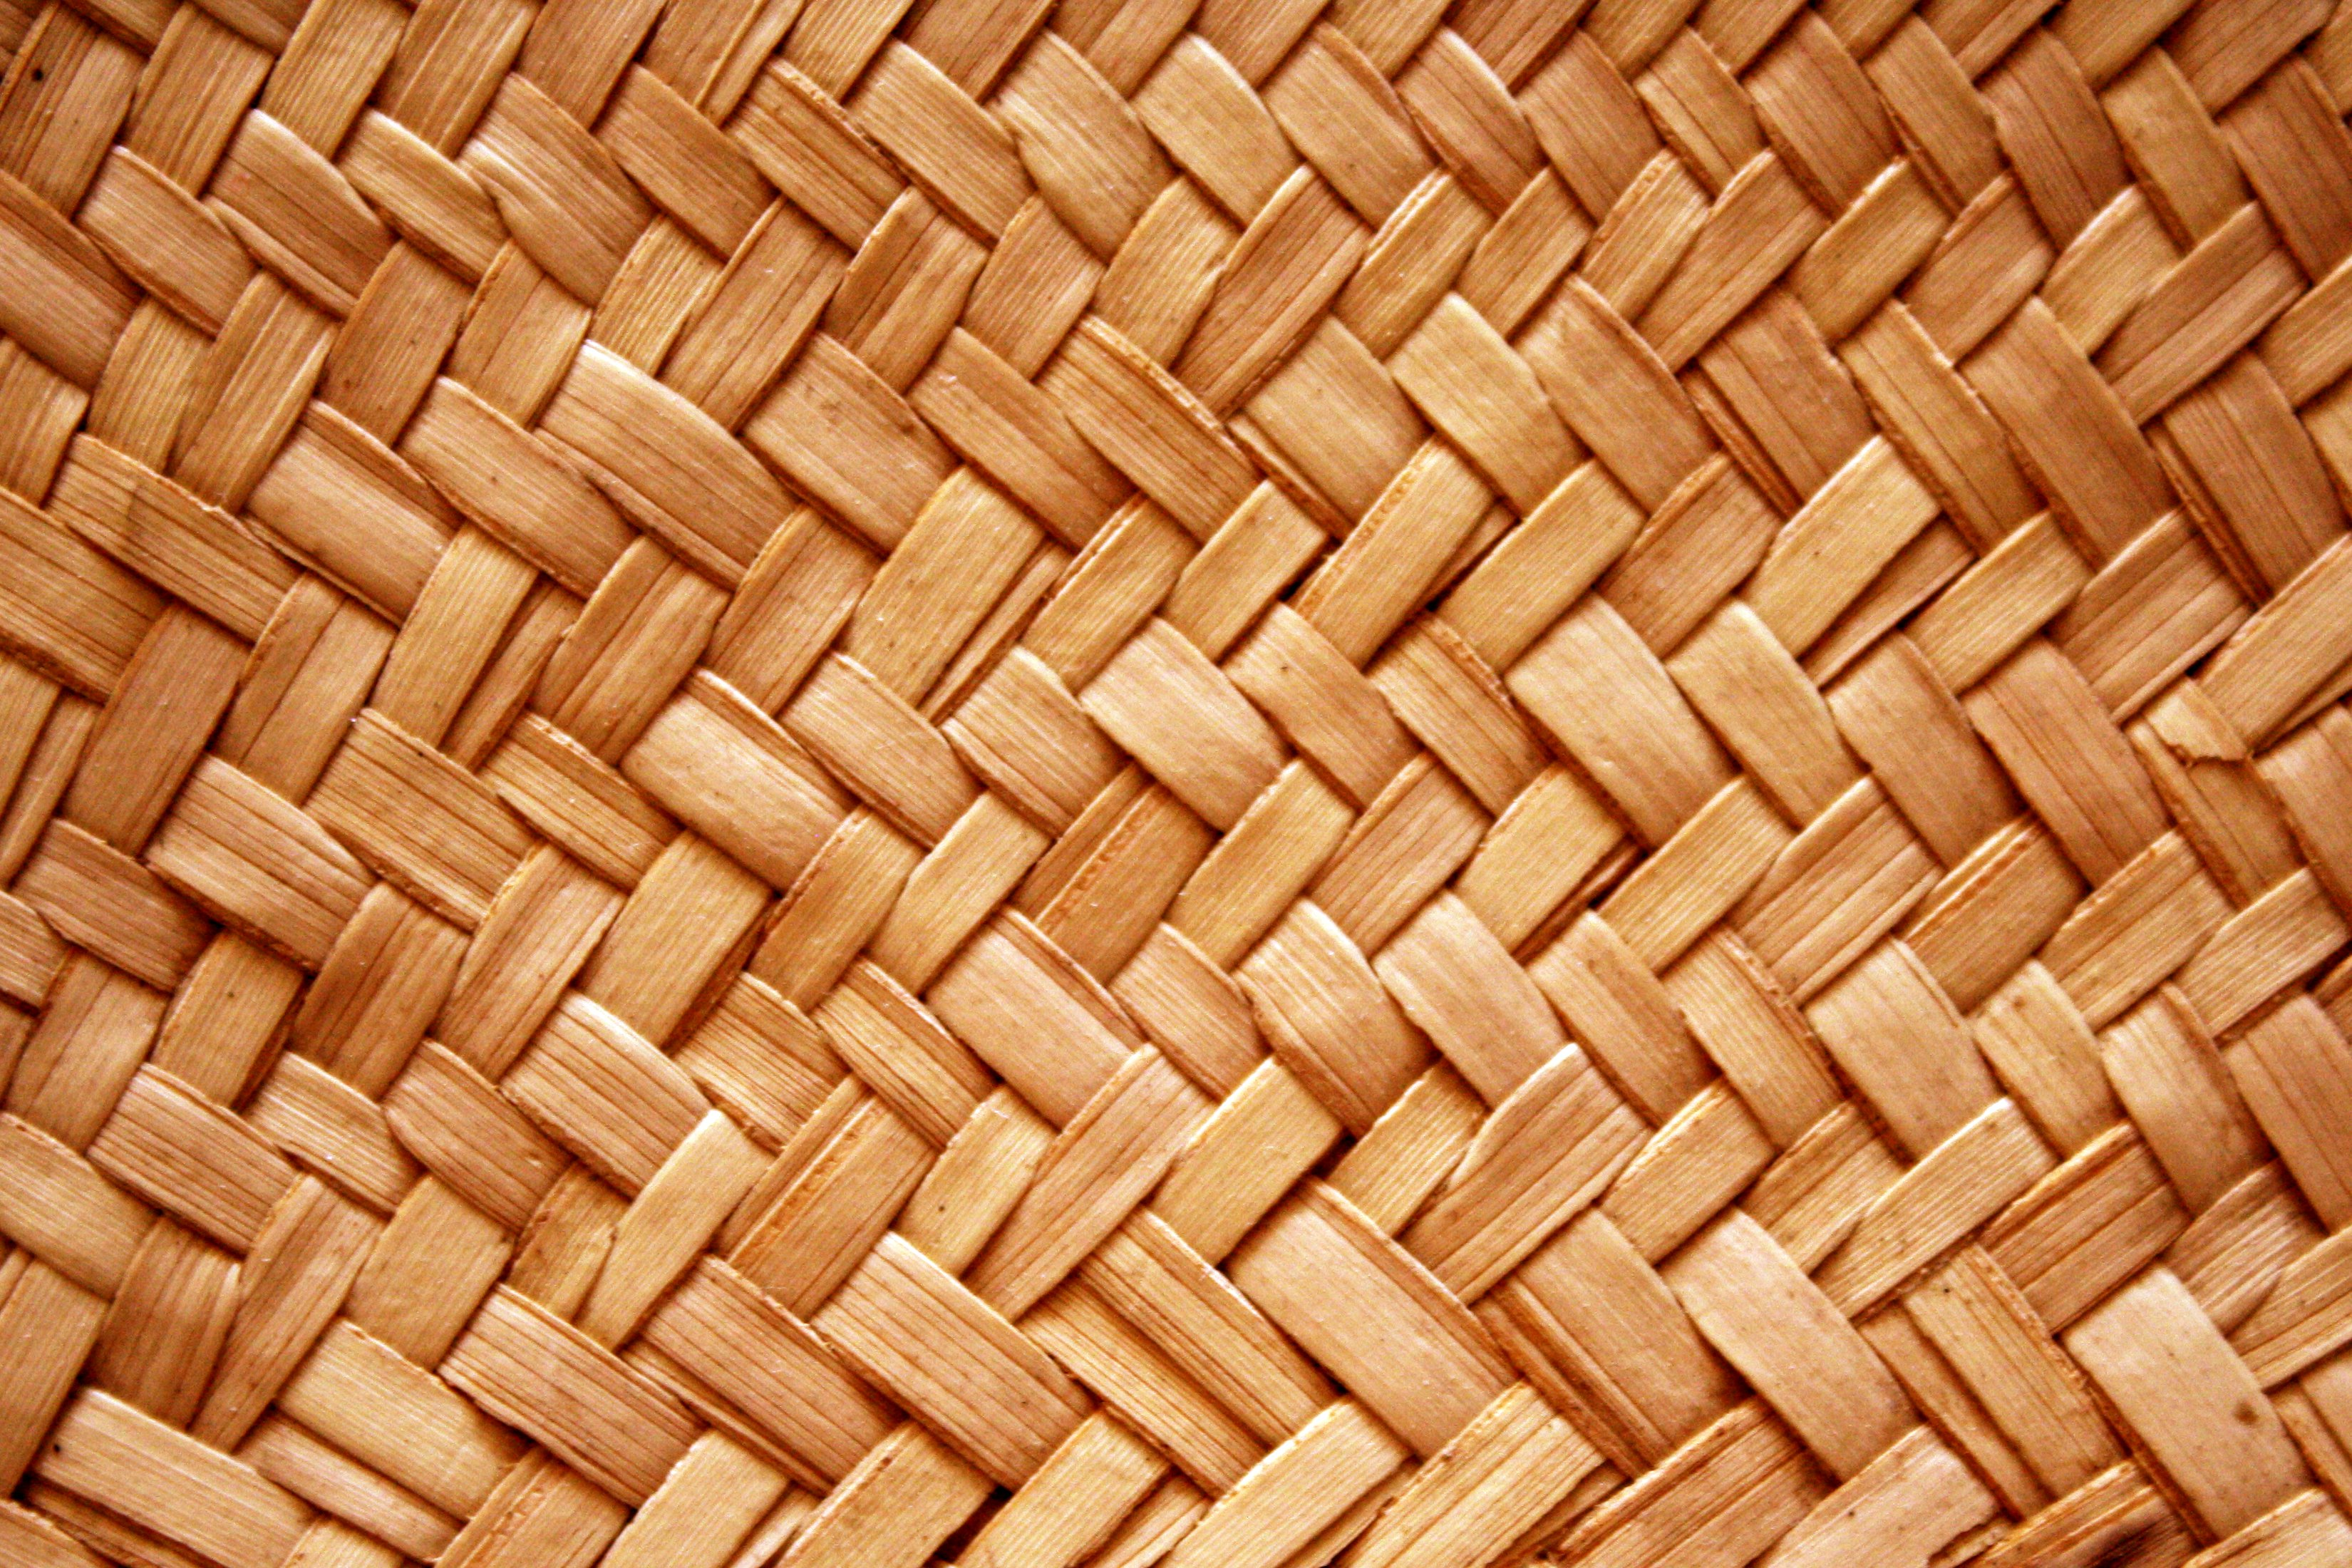 Light Brown Woven Straw Texture Picture Free Photograph